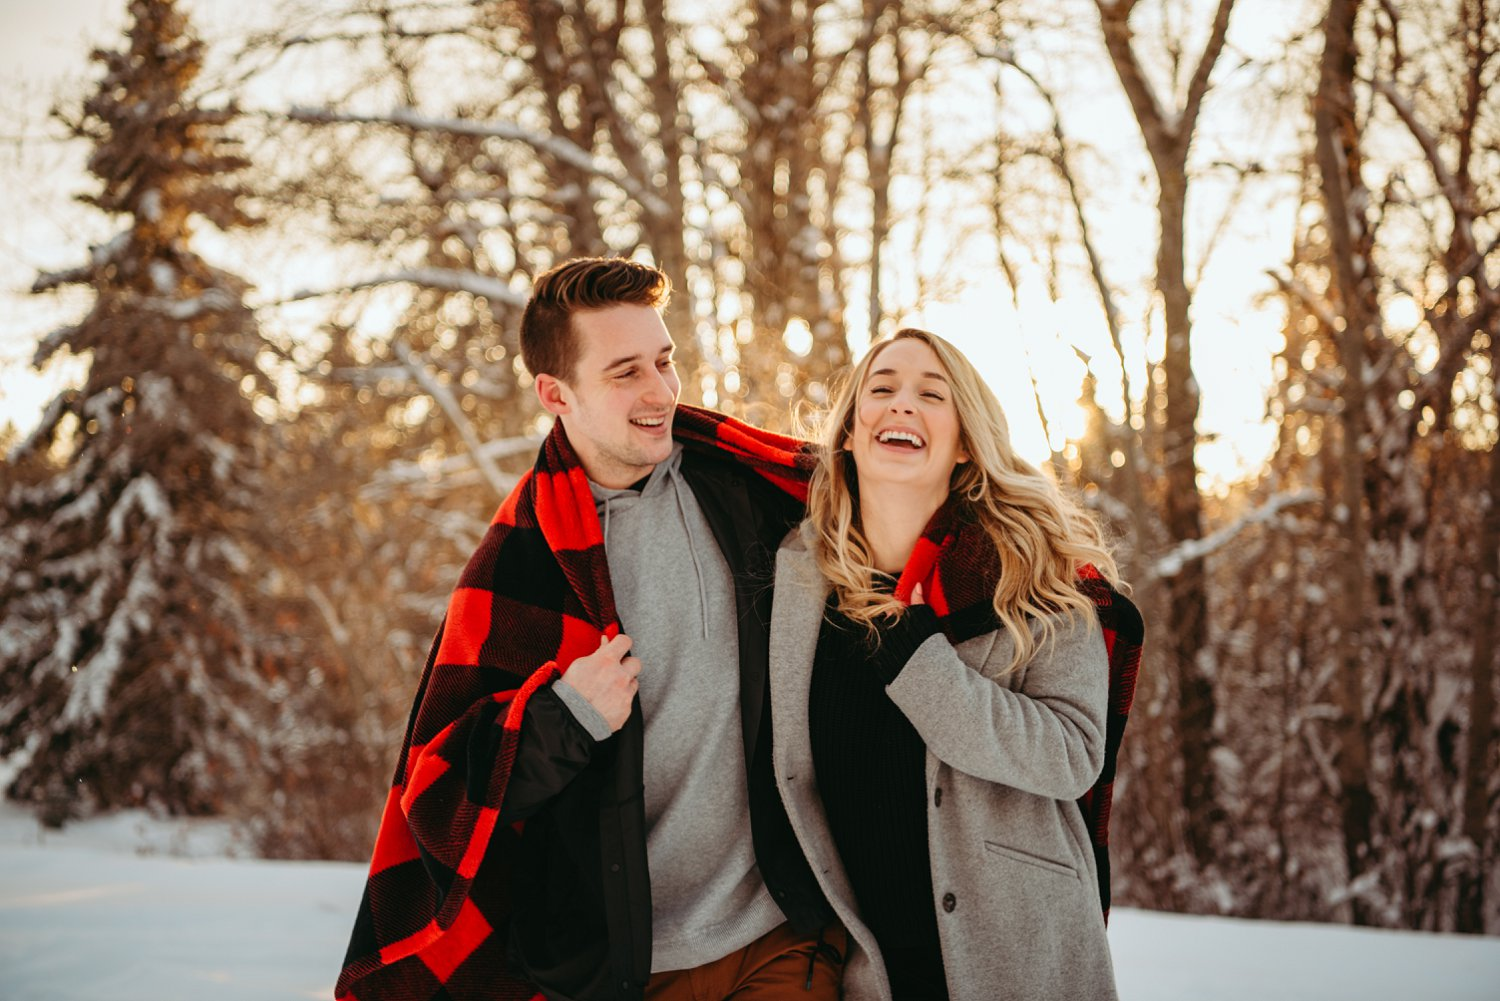 St. Albert Winter engagement, St. Albert couples session, Wintescape couples photos, wintry engagement photos